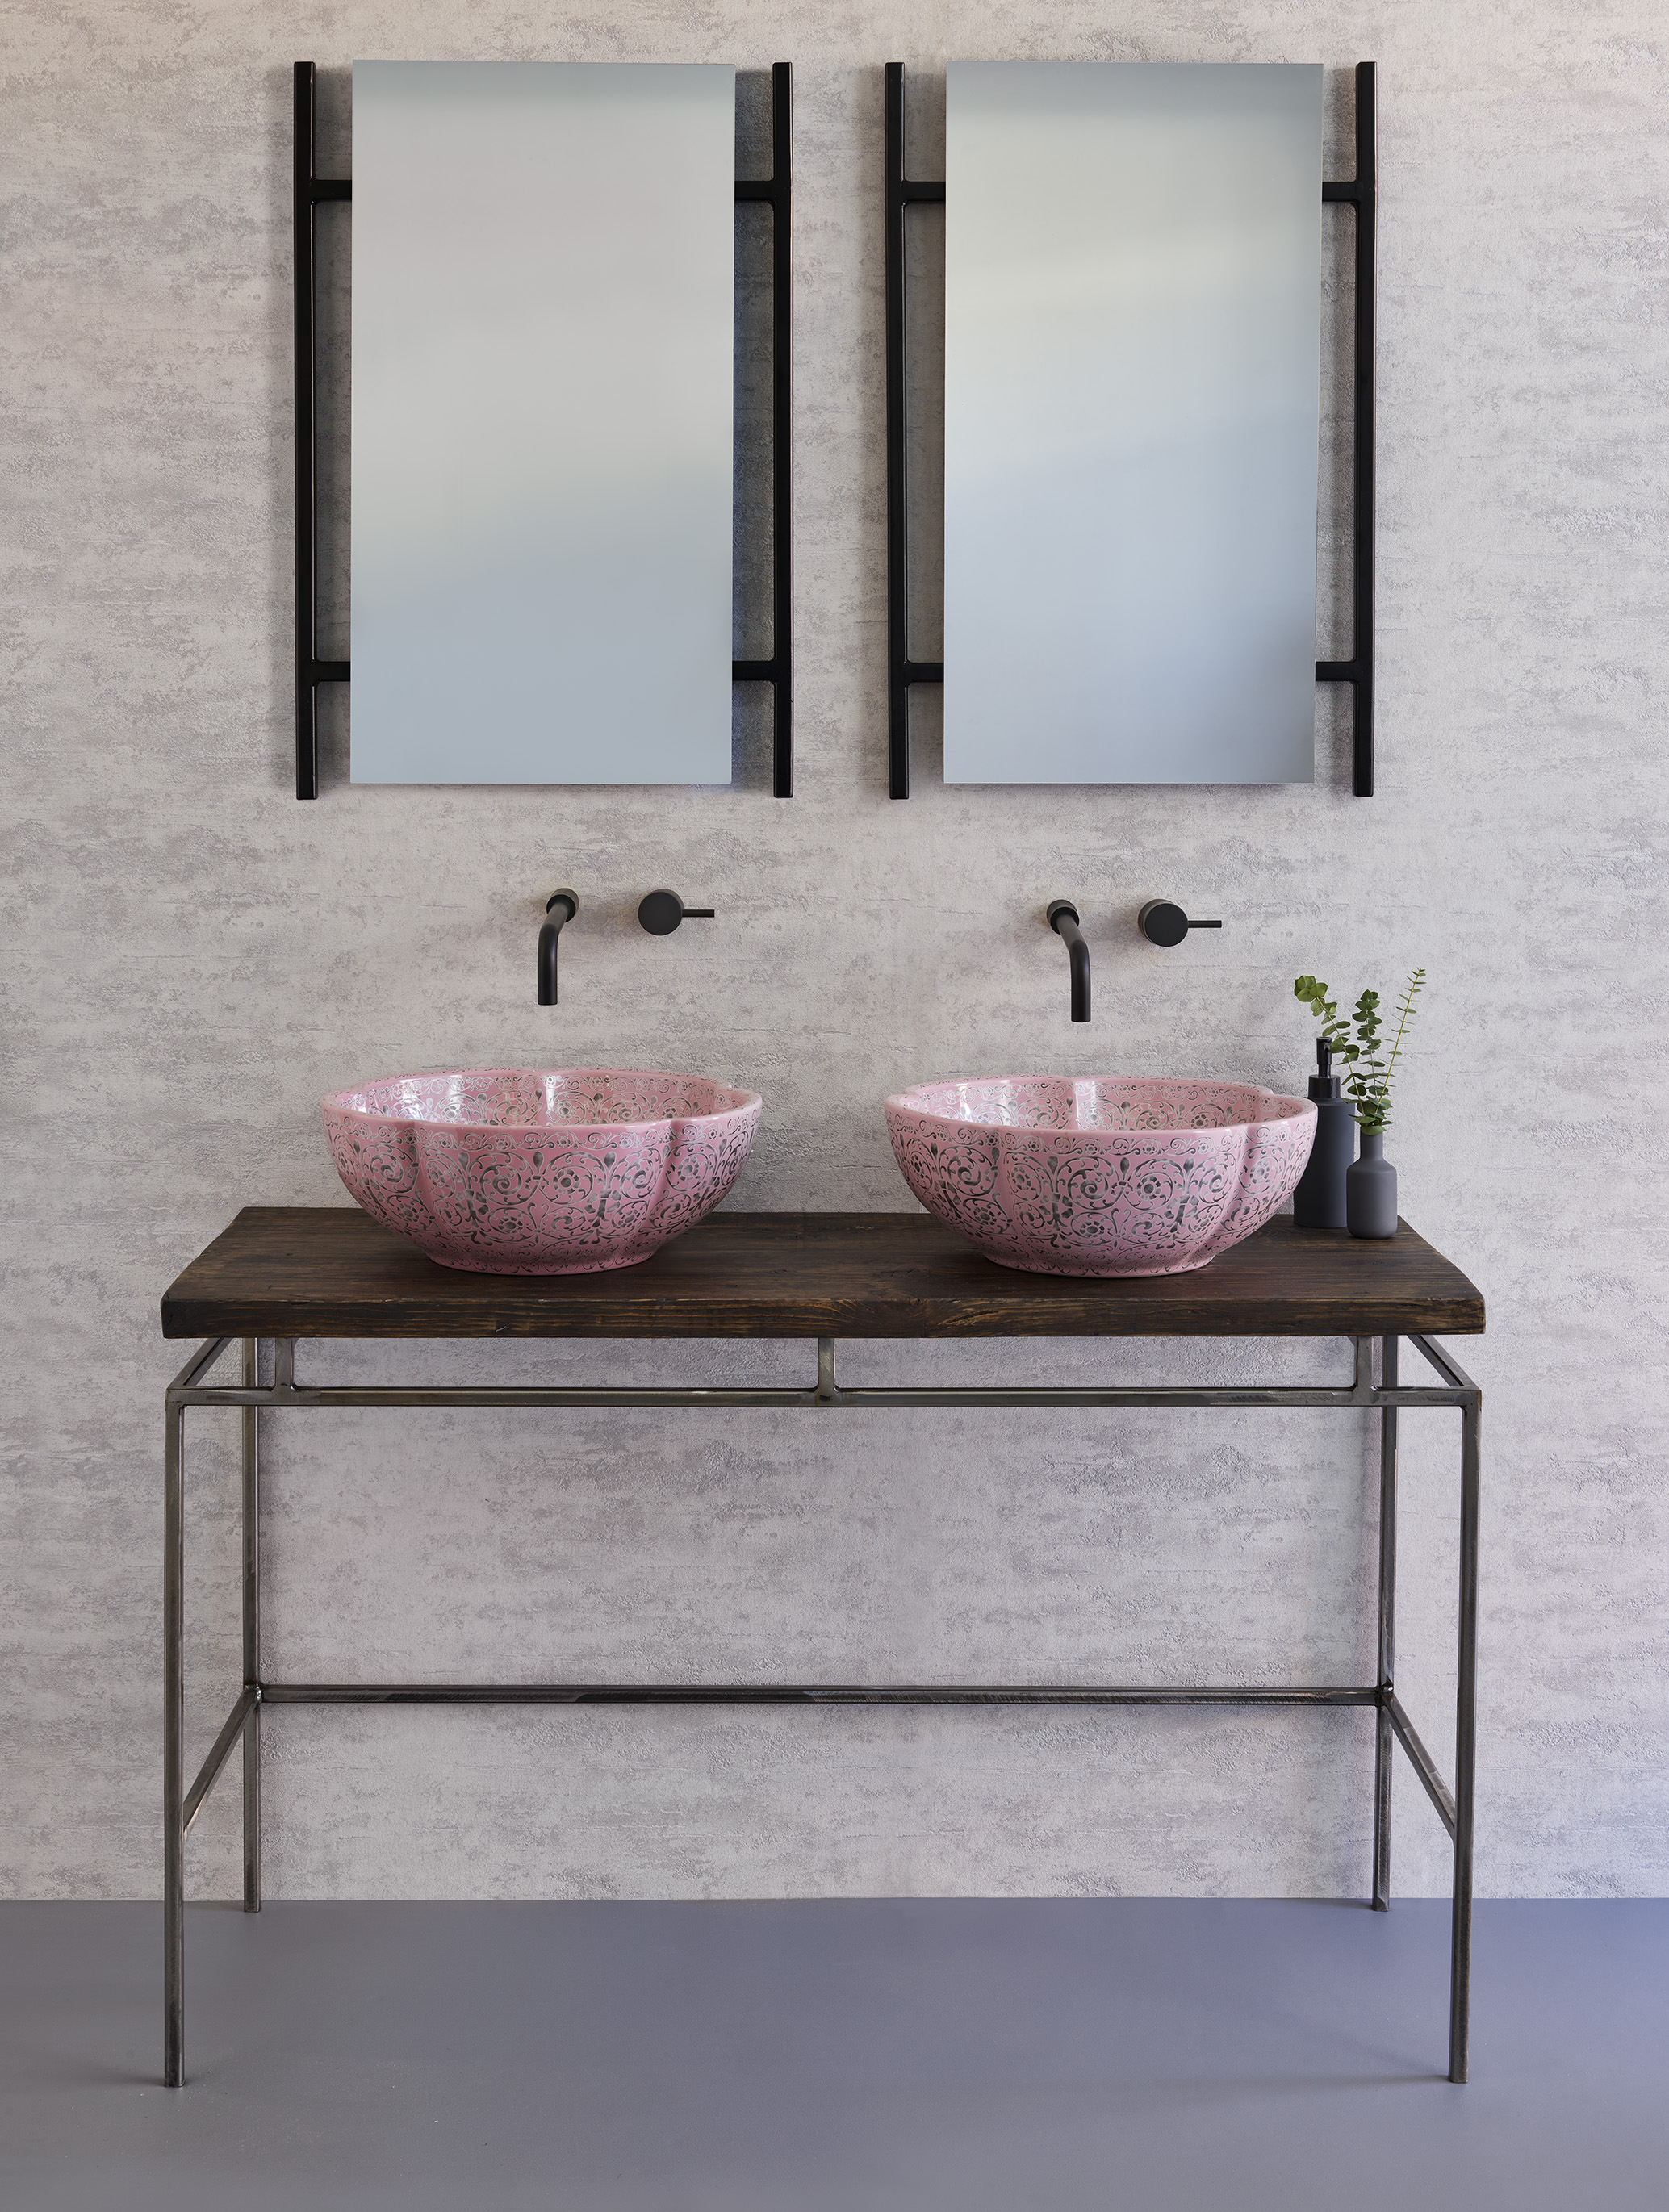 Austin Mirrors - To complete the look, pair the beautiful countertop wash-basins with an elegant co-ordinating handmade steel framed mirror from The London Basin company's Austin collection. Designed to sit in harmony with the delicate vanity units, the mirrors are available in black, gold, copper and industrial steel finishes, cleverly designed to frame the luxurious basins.